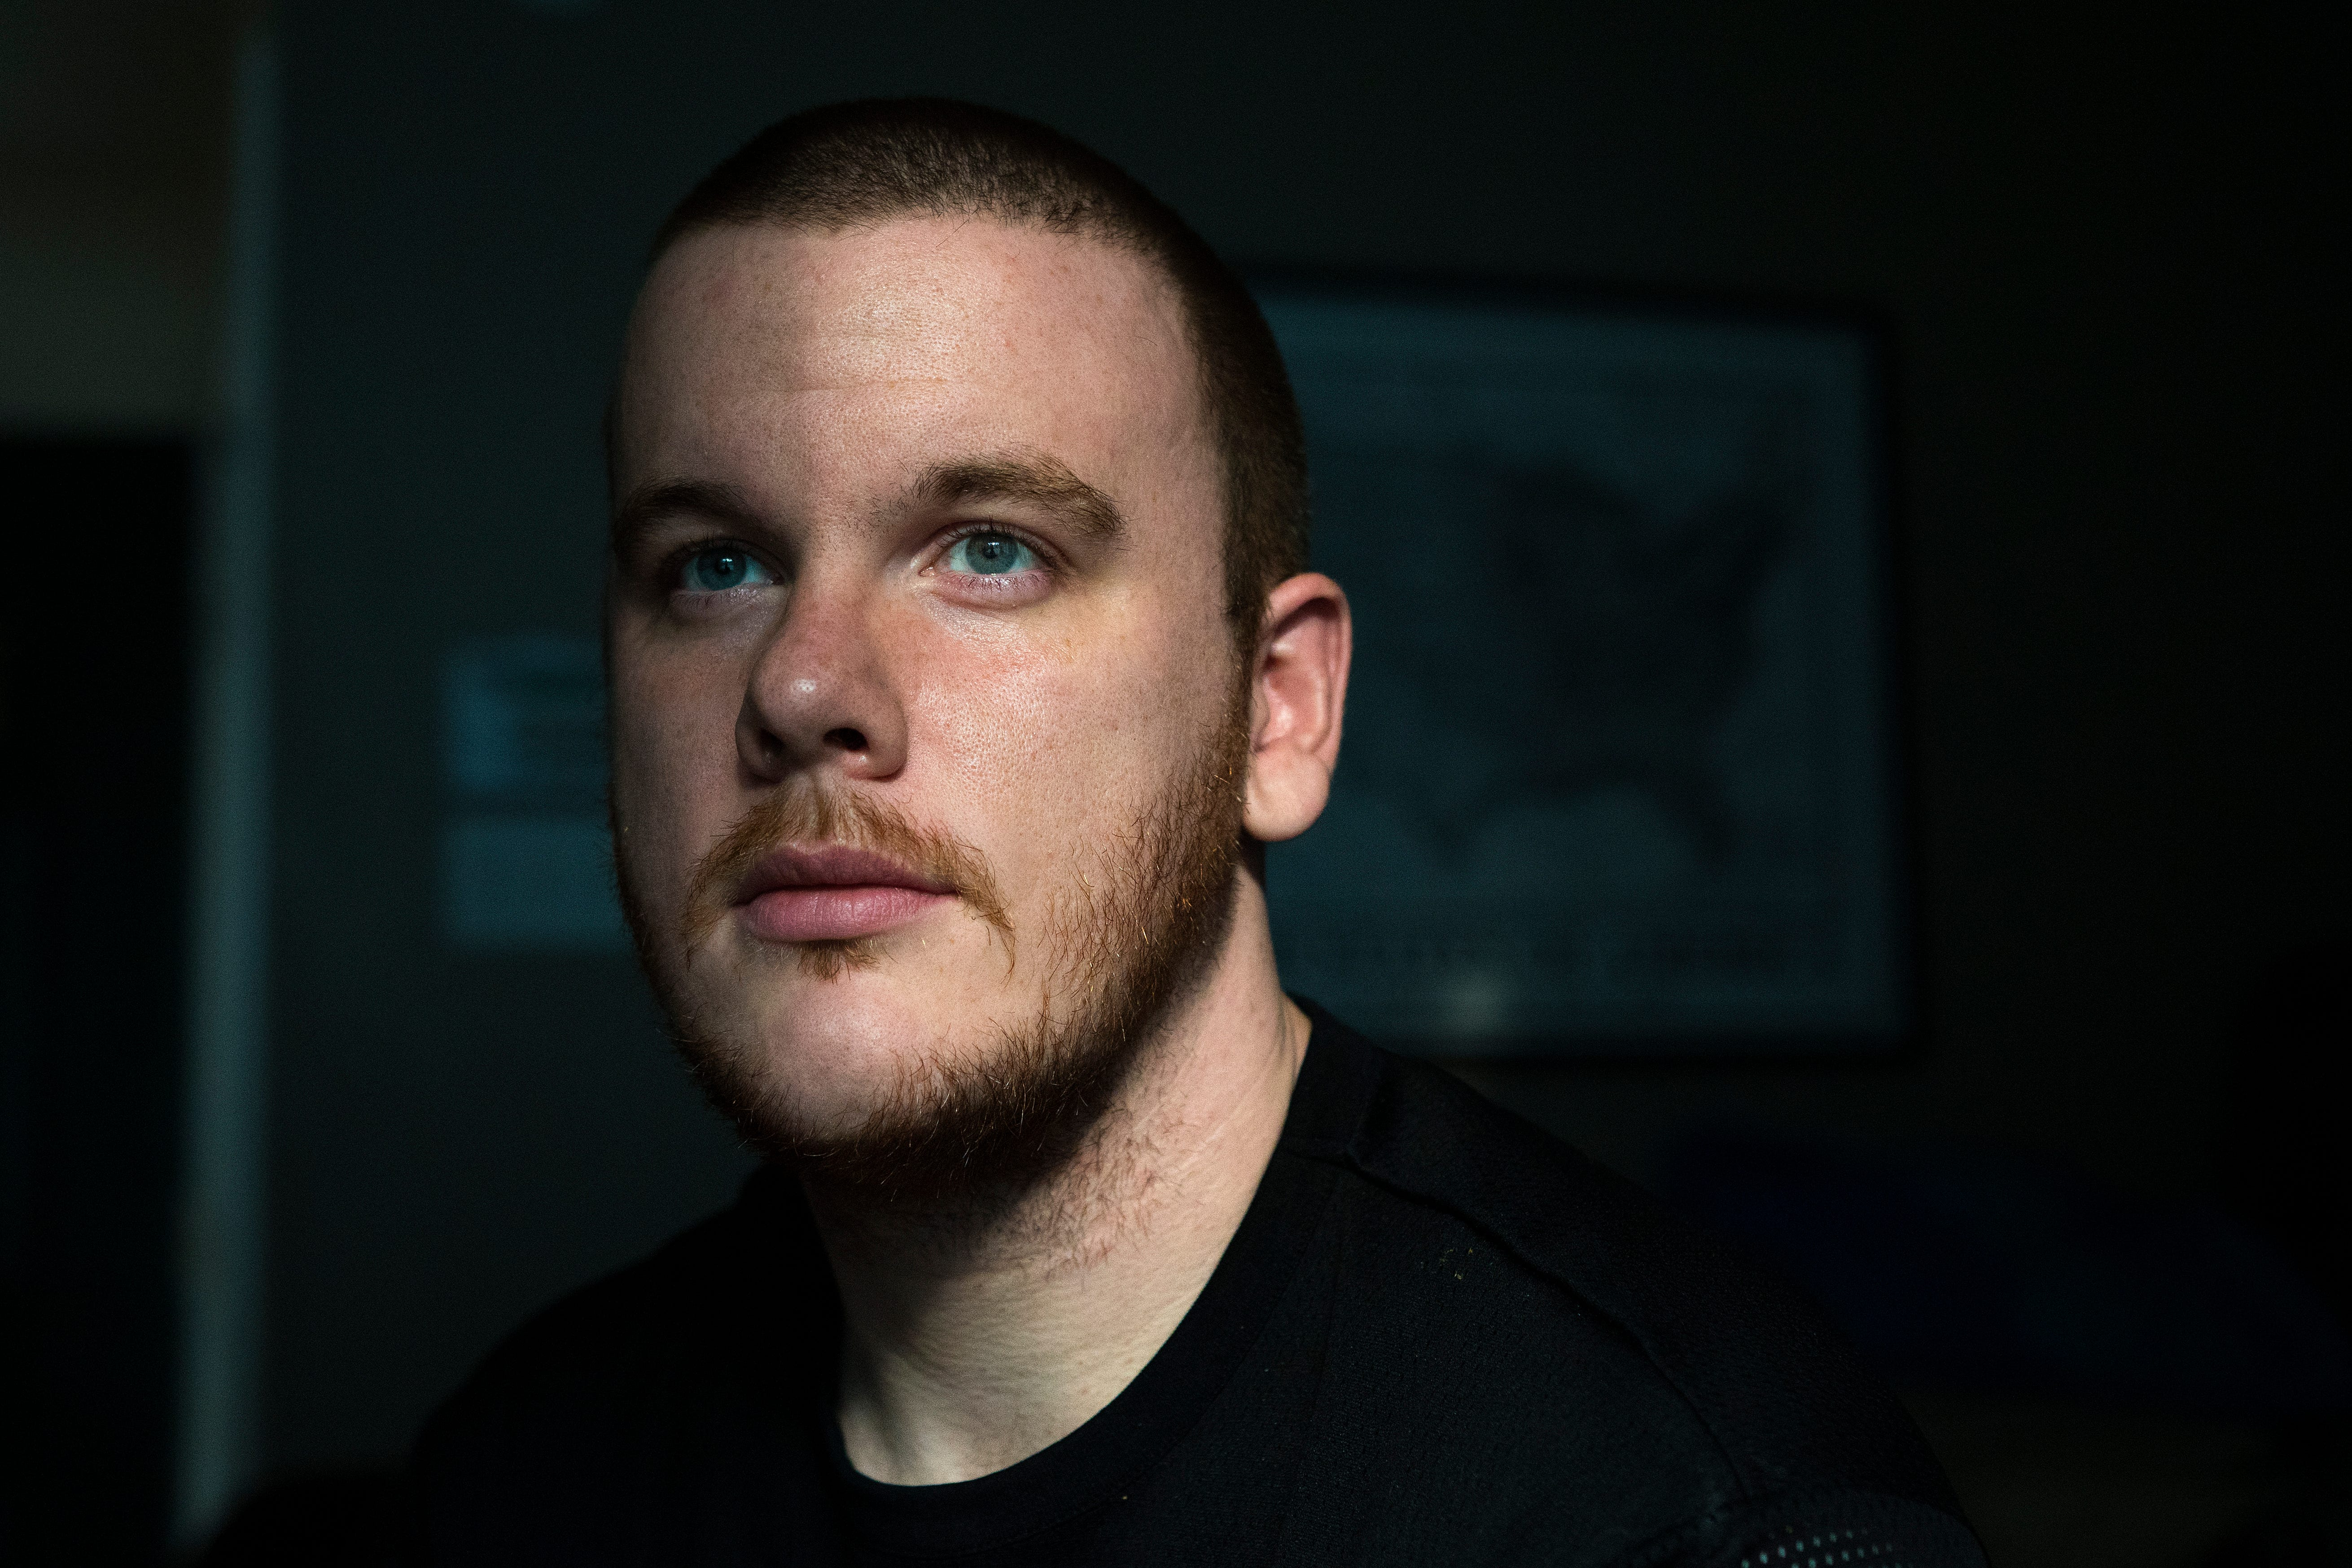 These injections can help Delawareans overcome their heroin addiction | Delaware Online